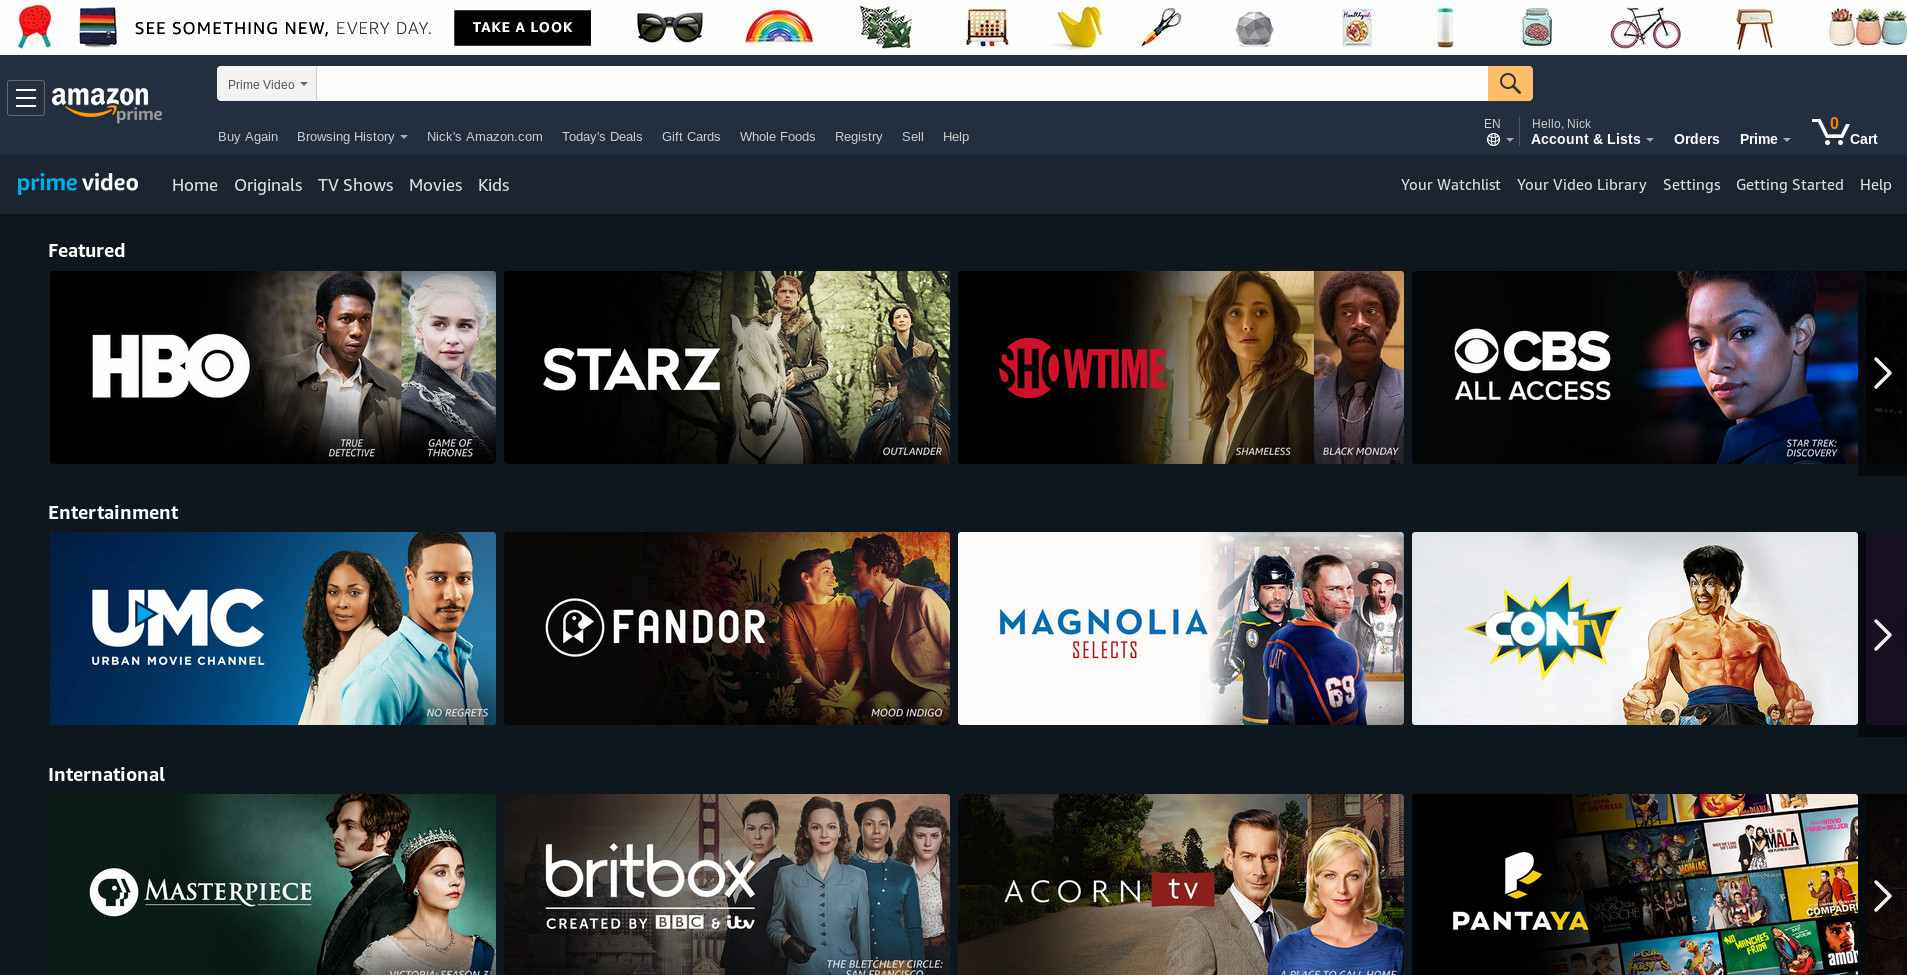 Amazon Channels: How to Add and Use Premium Channels Like